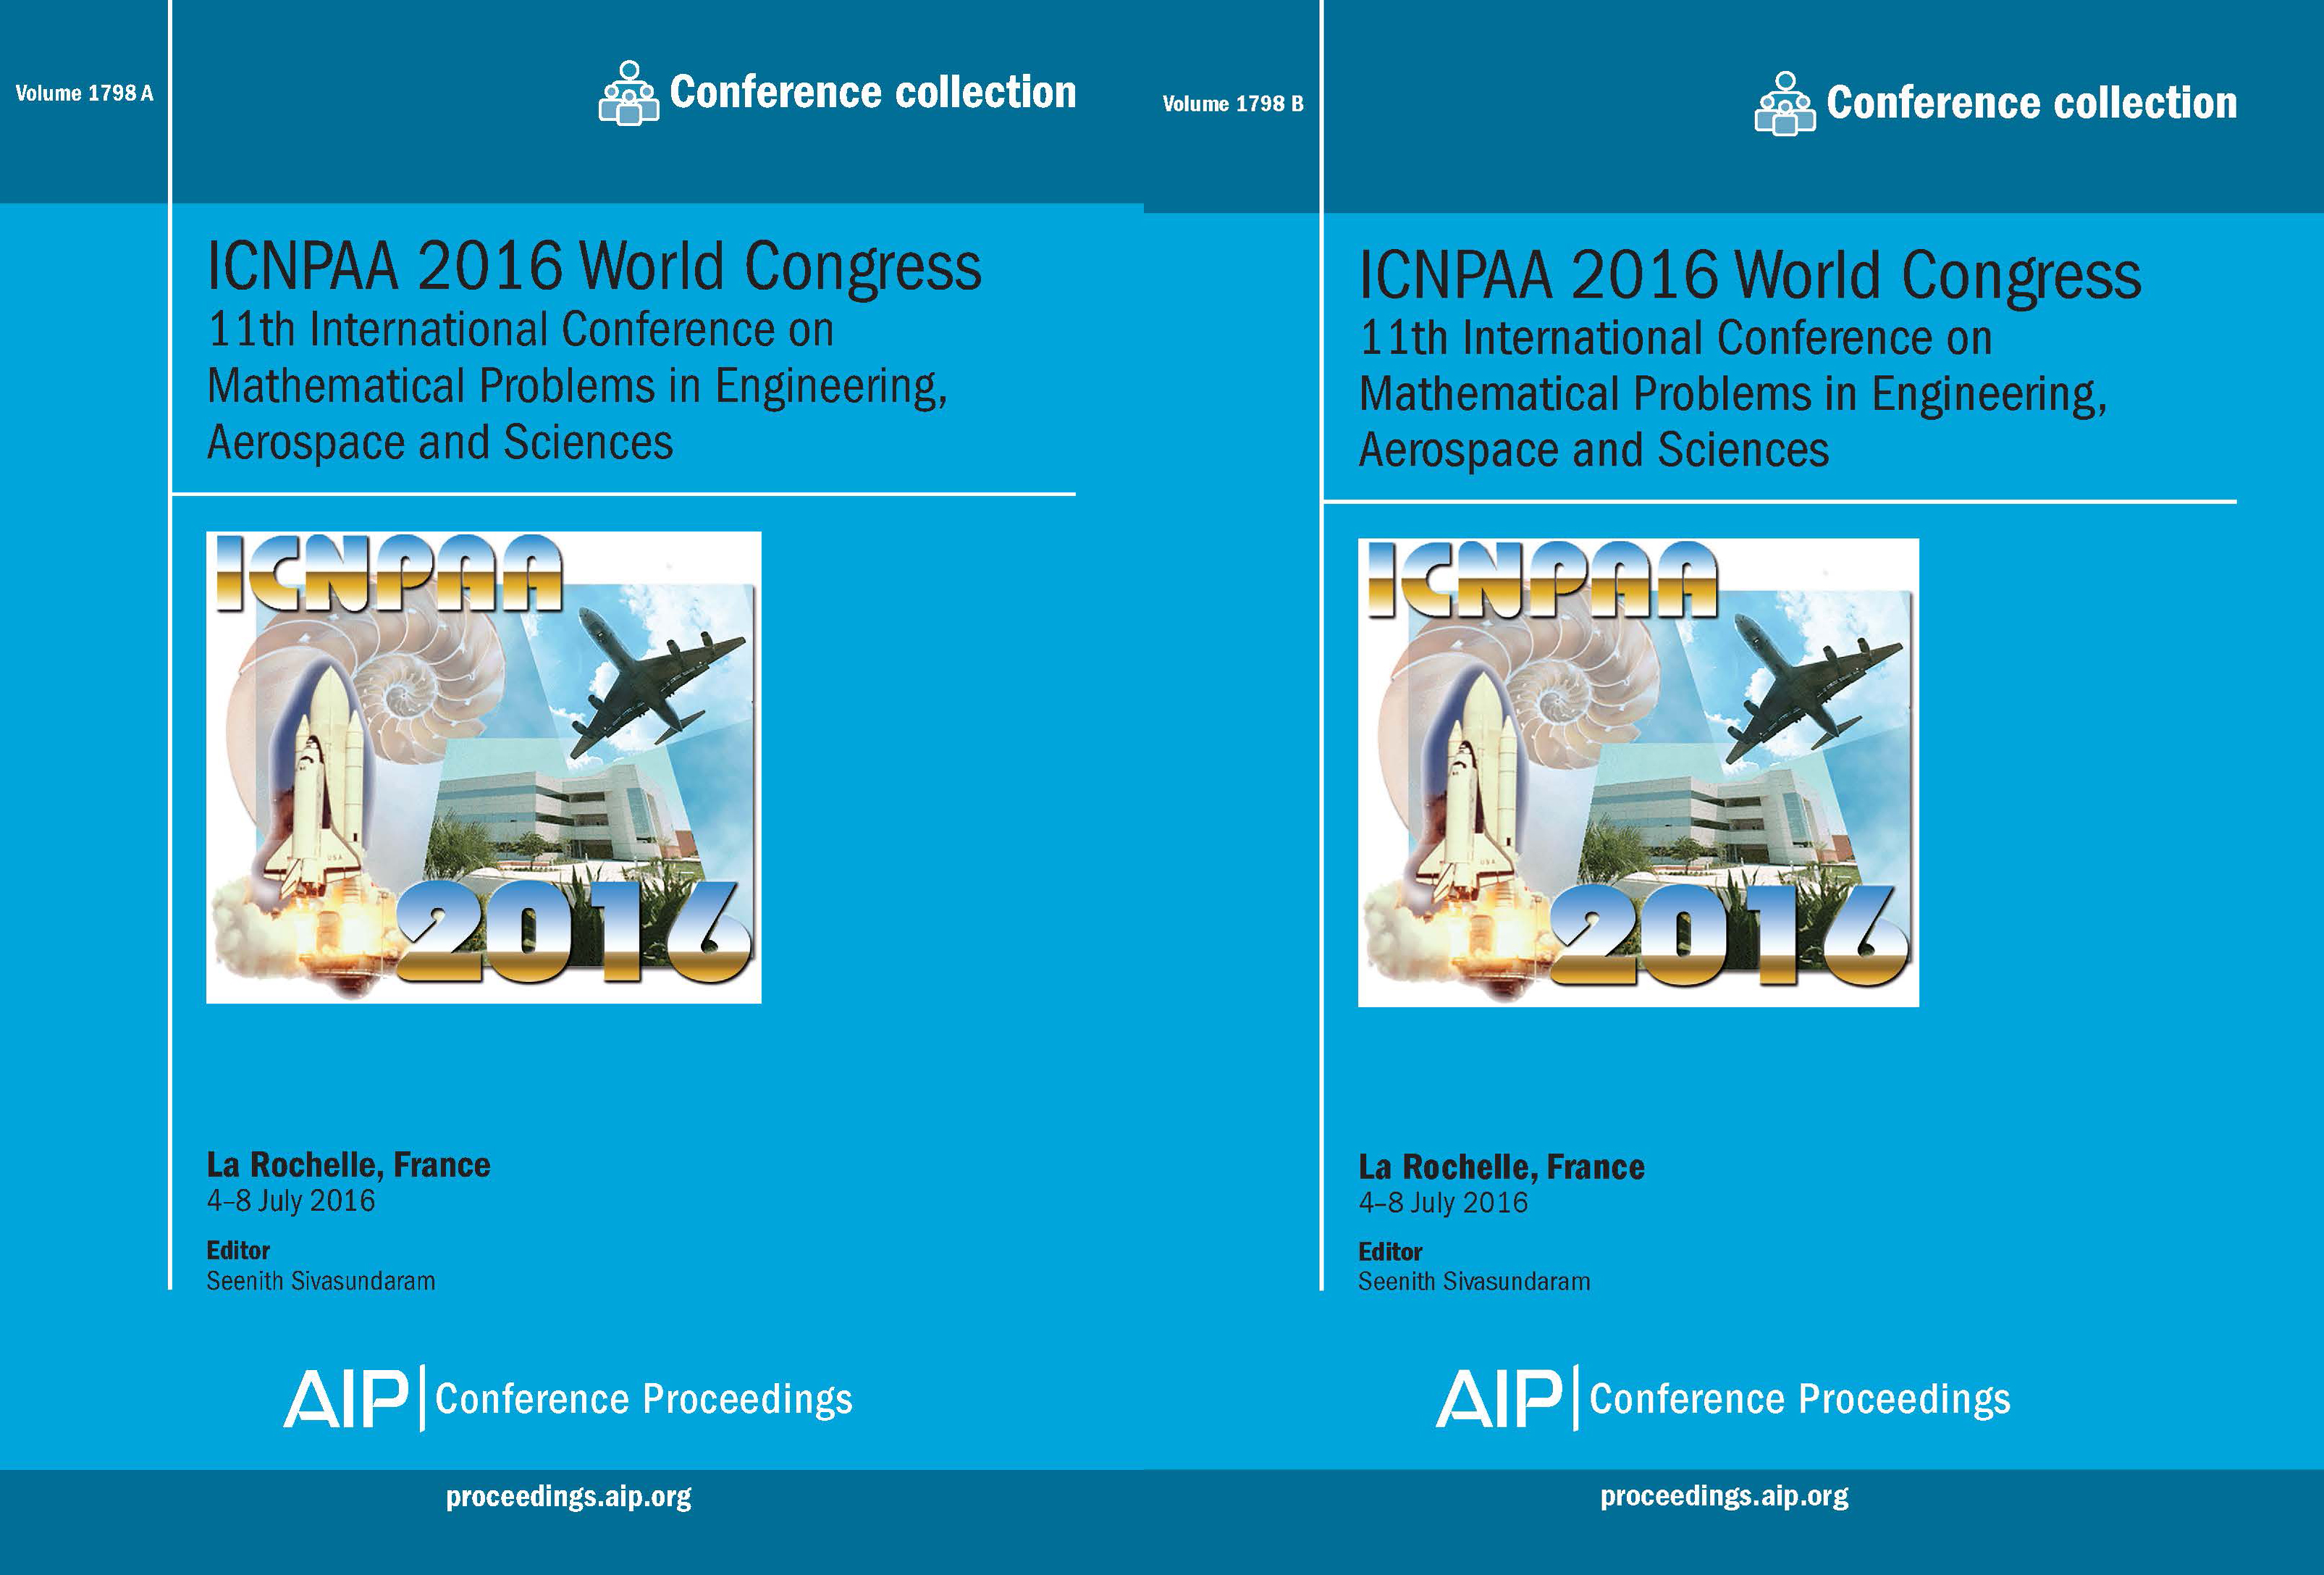 Volume 1798: ICNPAA 2016 World Congress: 11th International